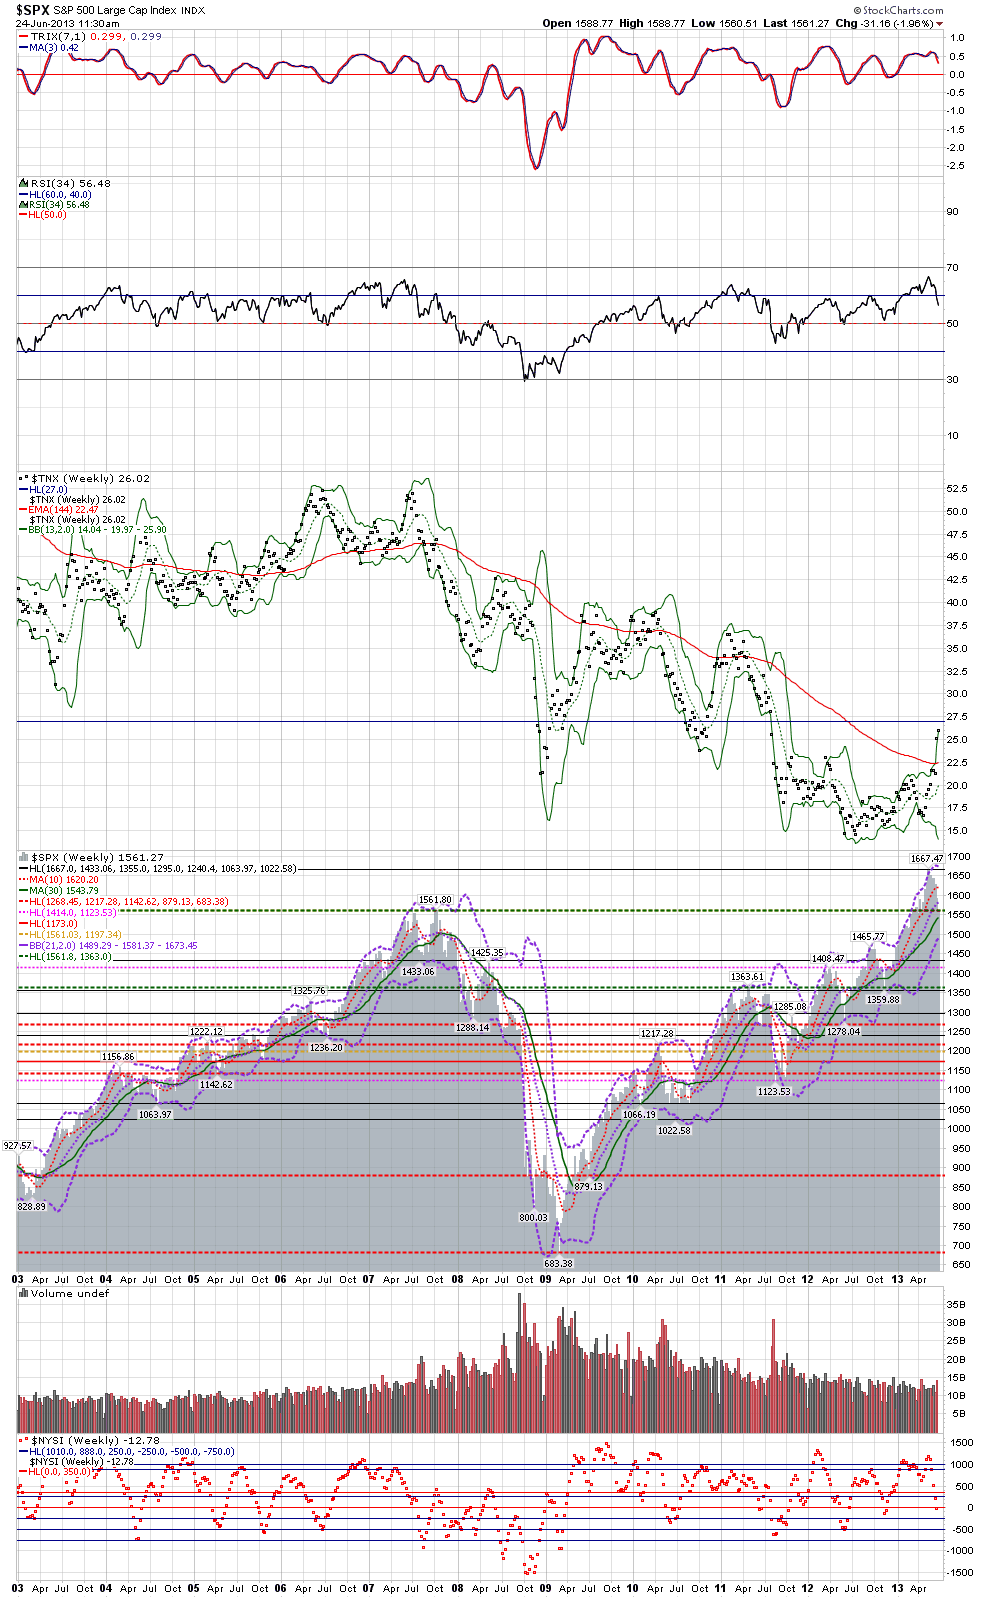 Name: SPX_and_TNX_weekly_closes_-_intraday_update_June_24,_2013.png, Views: 46, Size: 100.41 KB